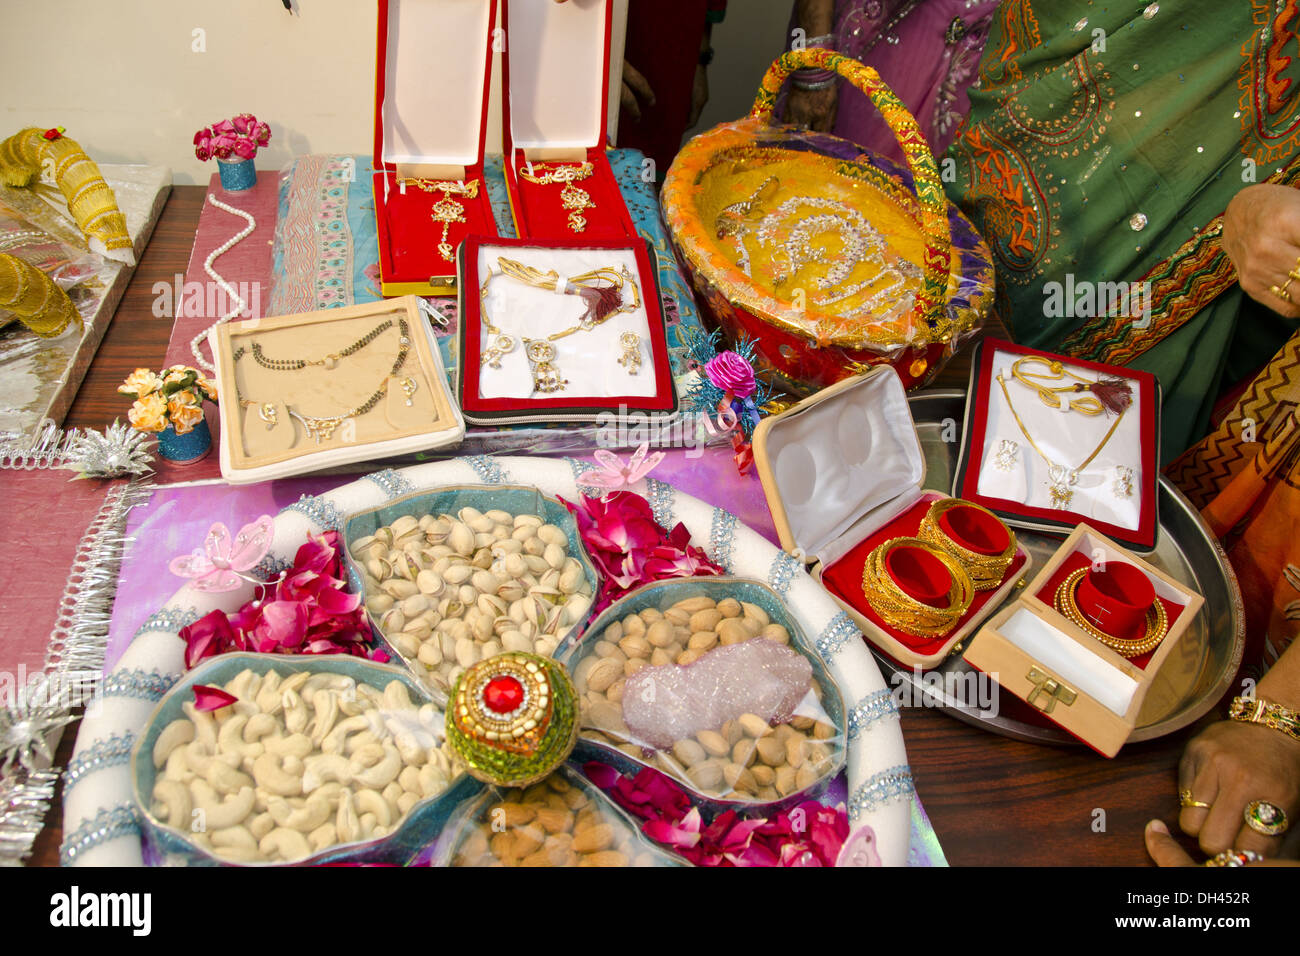 Wedding Gifts Ideas Indian Bride : Ideas. Gifts For Indian Wedding. skinnycargopantsaddict wedding and ...